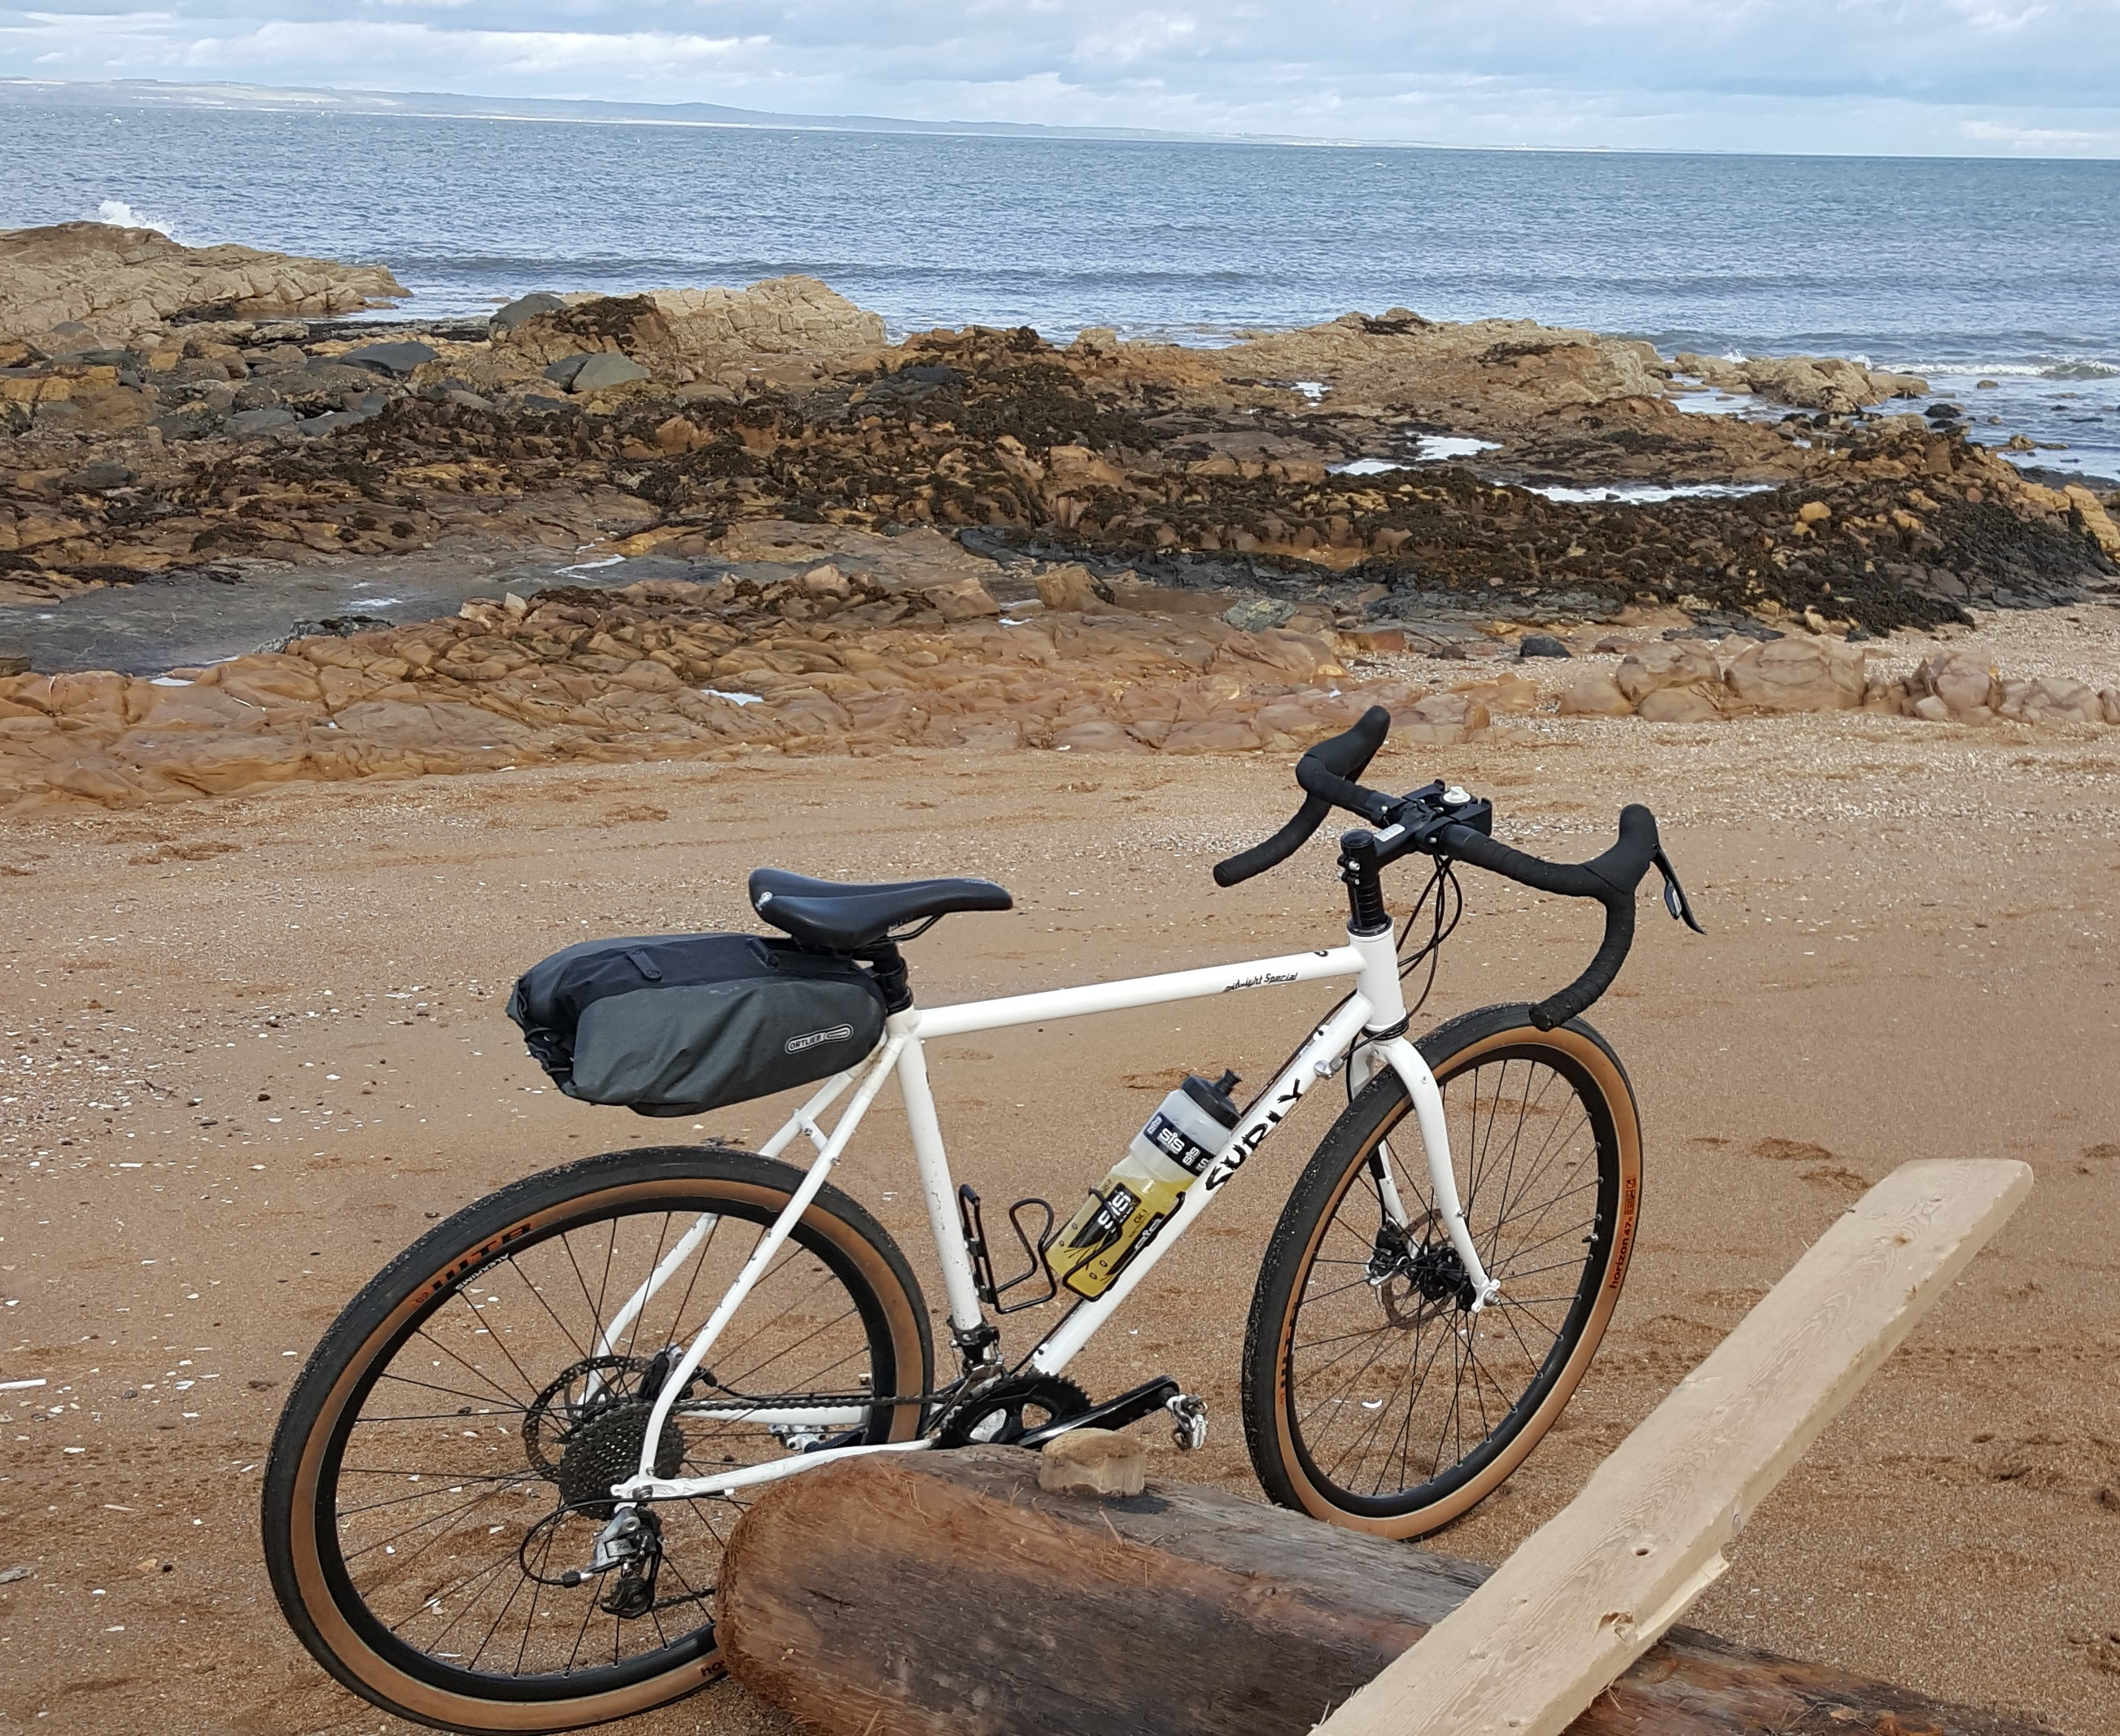 CYCLING ABERLADY BAY EAST LOTHIAN AND HAVING THE RIGHT BIKE